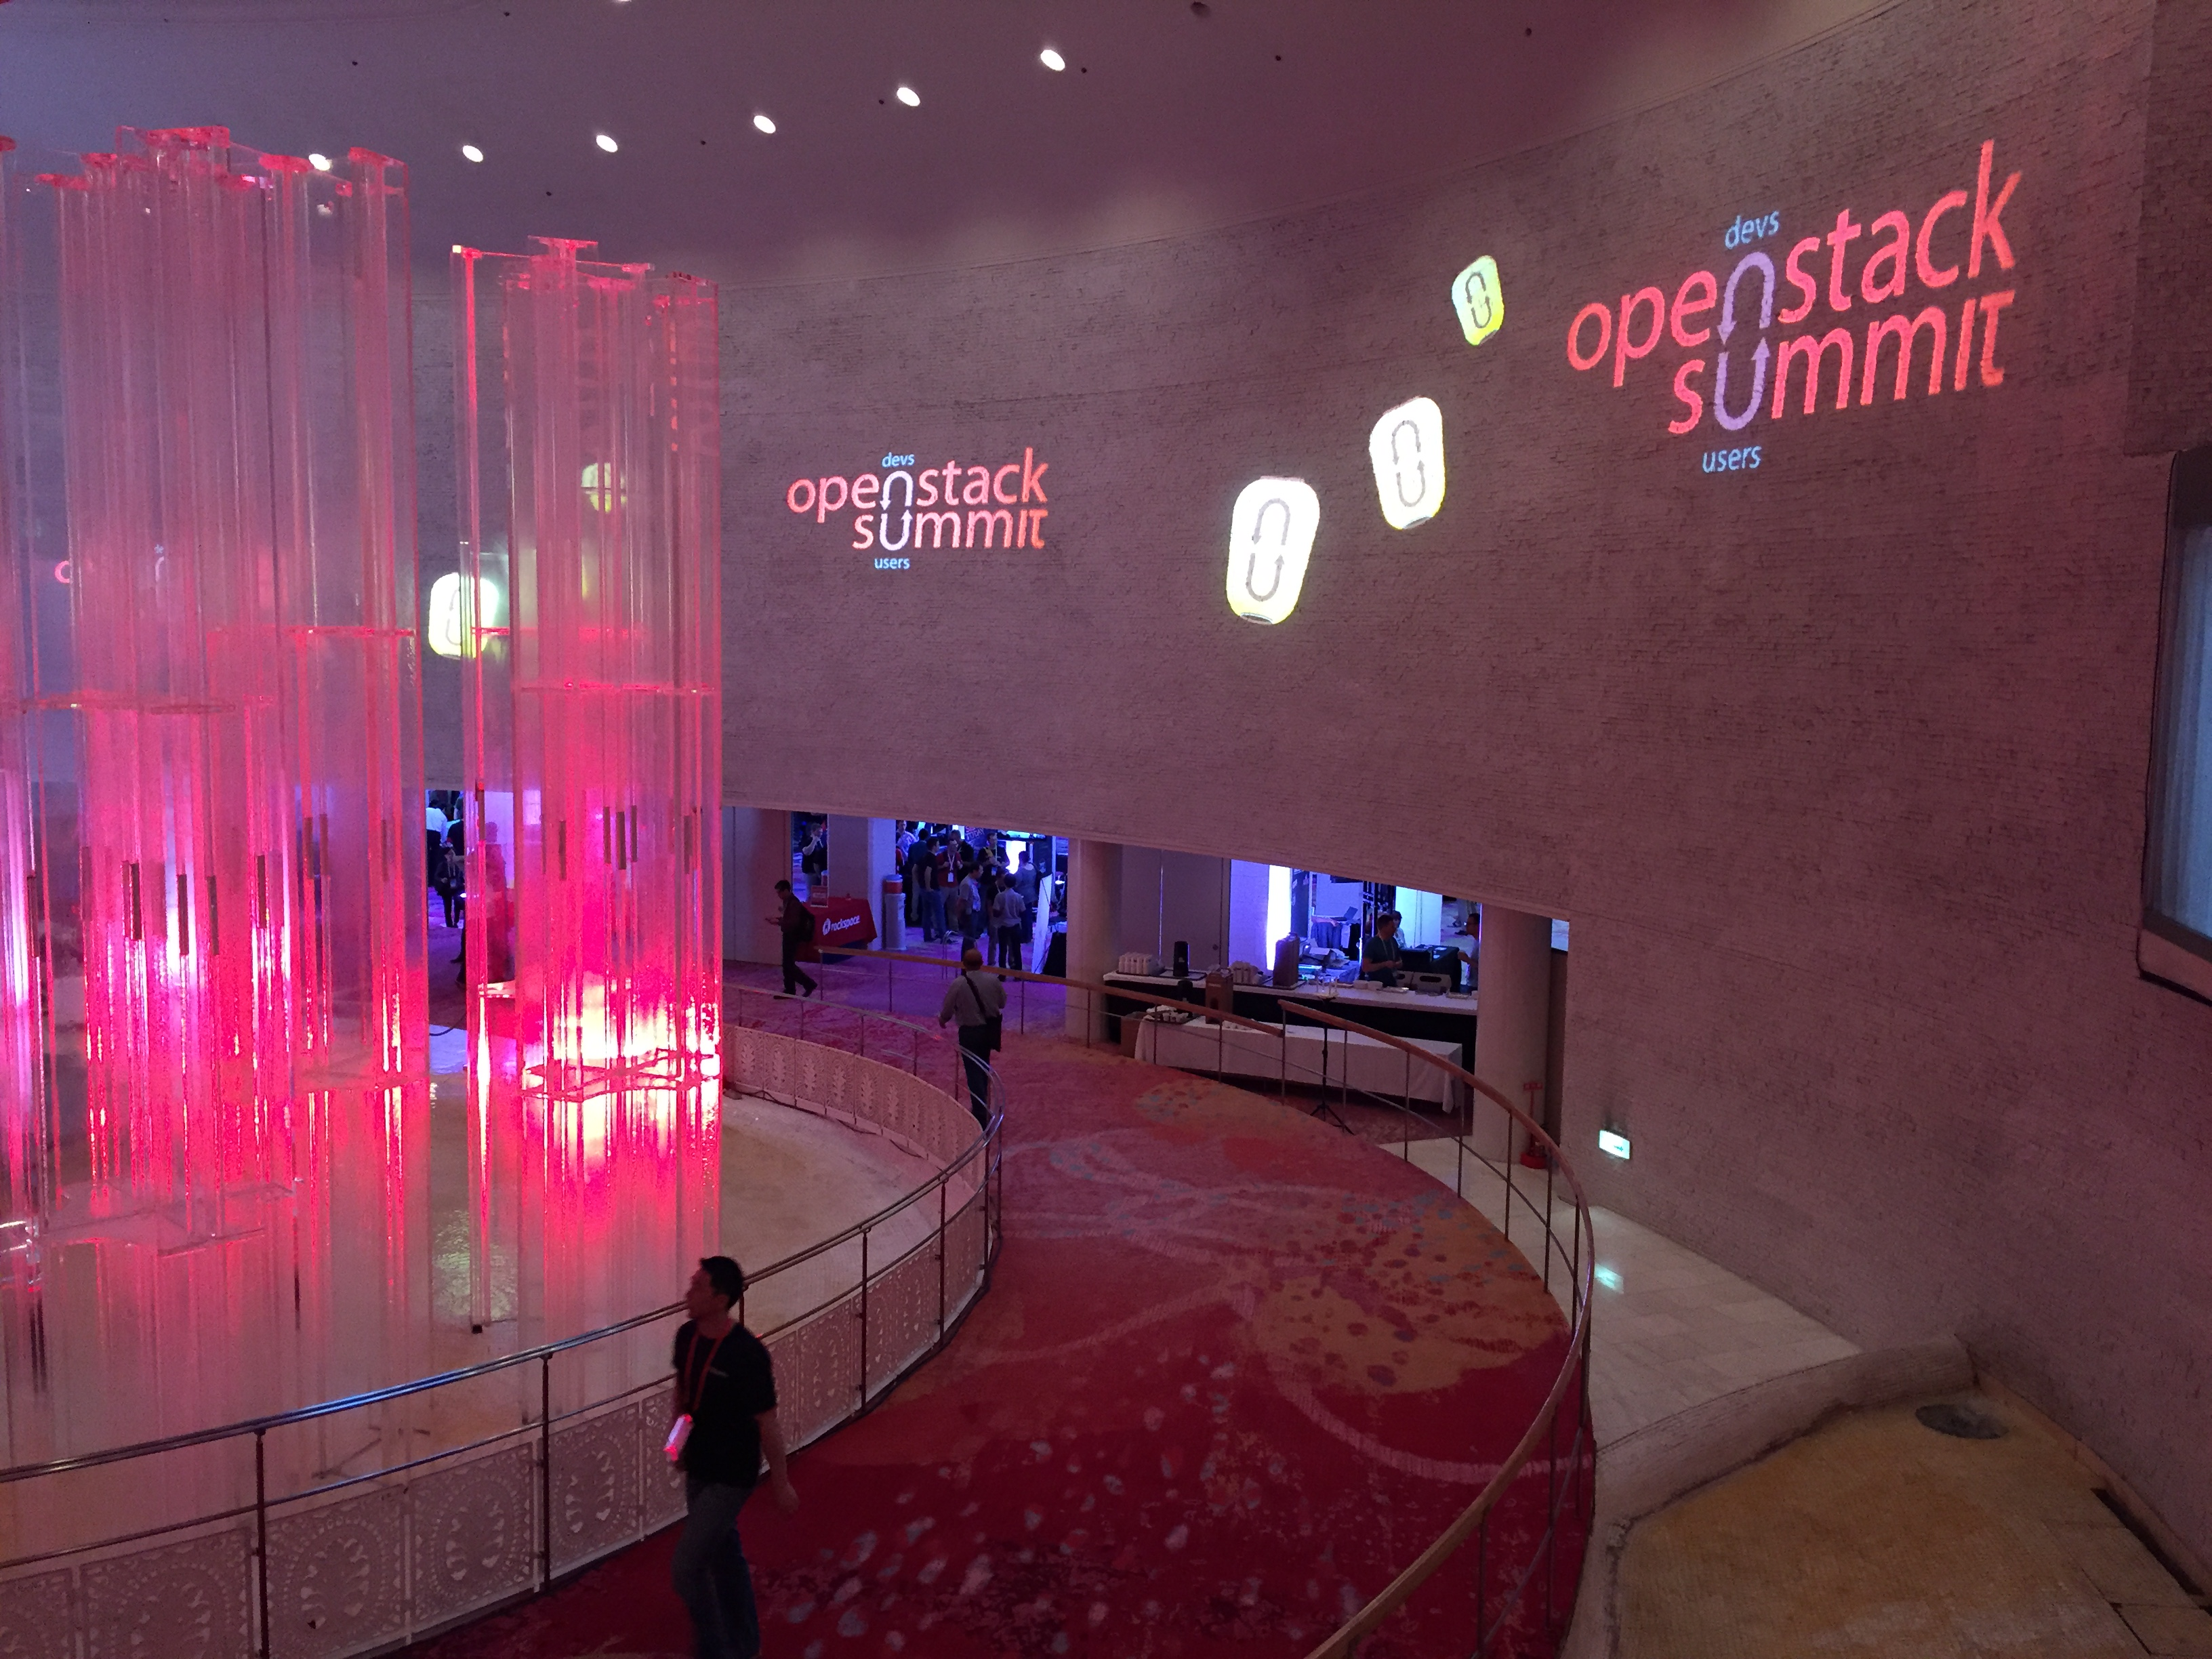 More than 5000 people attended the OpenStack Summit Tokyo, from 56 countries and 736 companies.